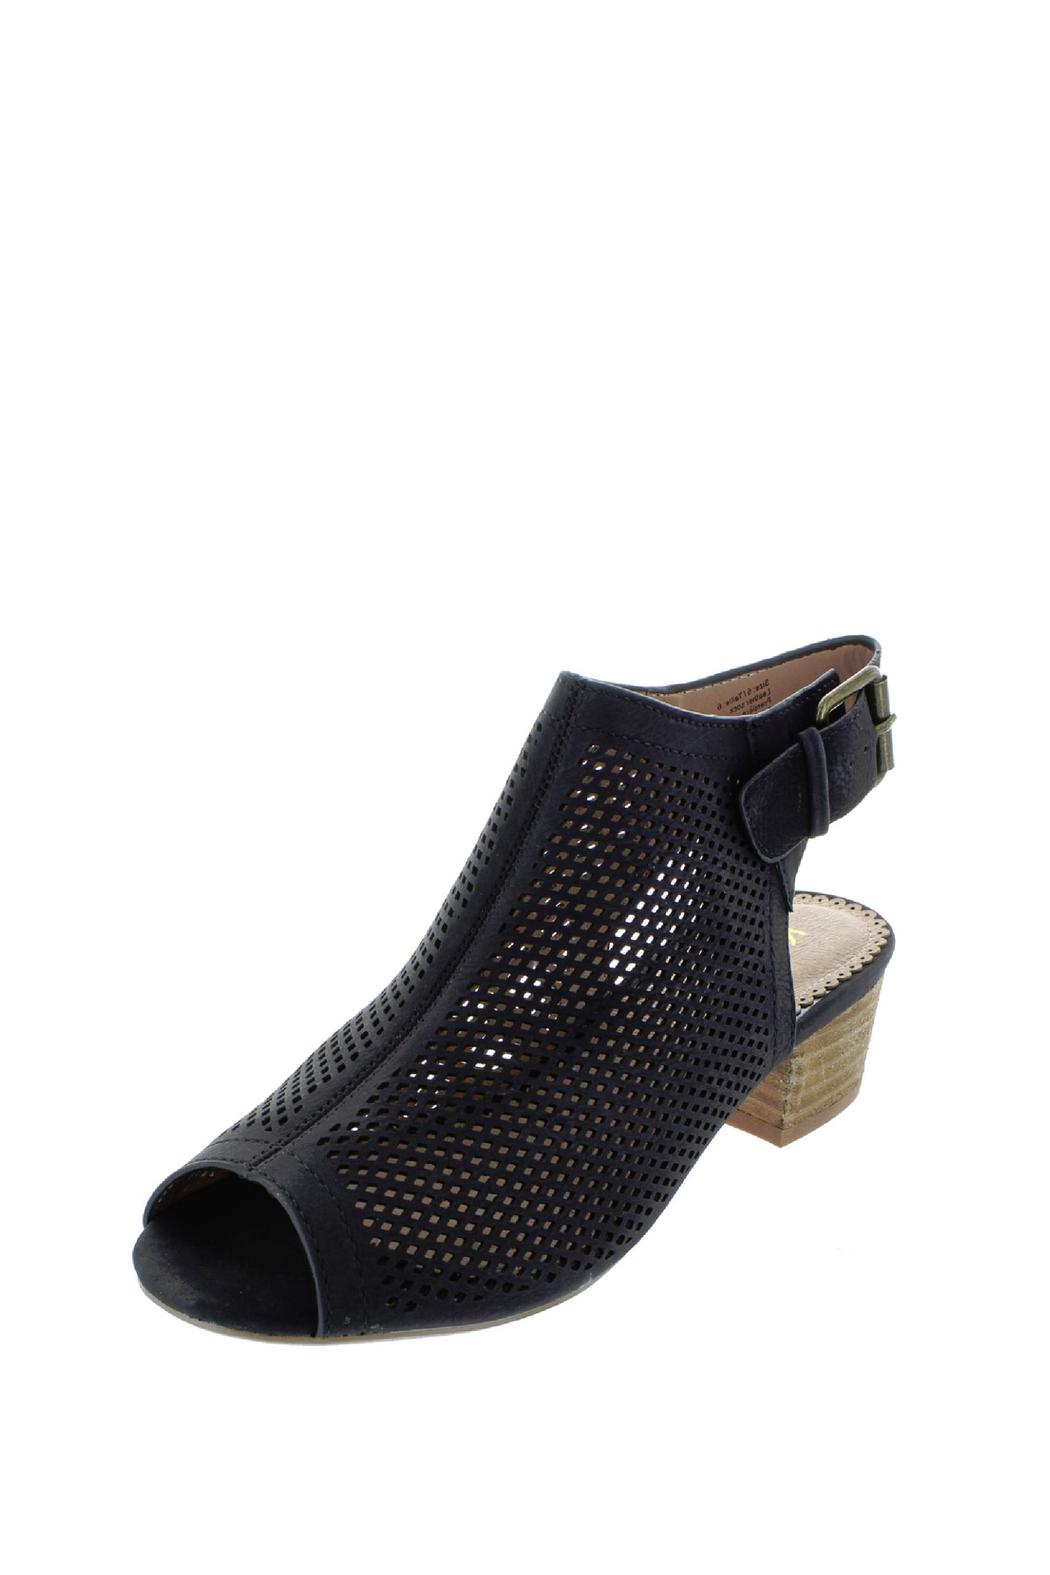 Restricted Haze Bootie From New York By Head Over Heelz